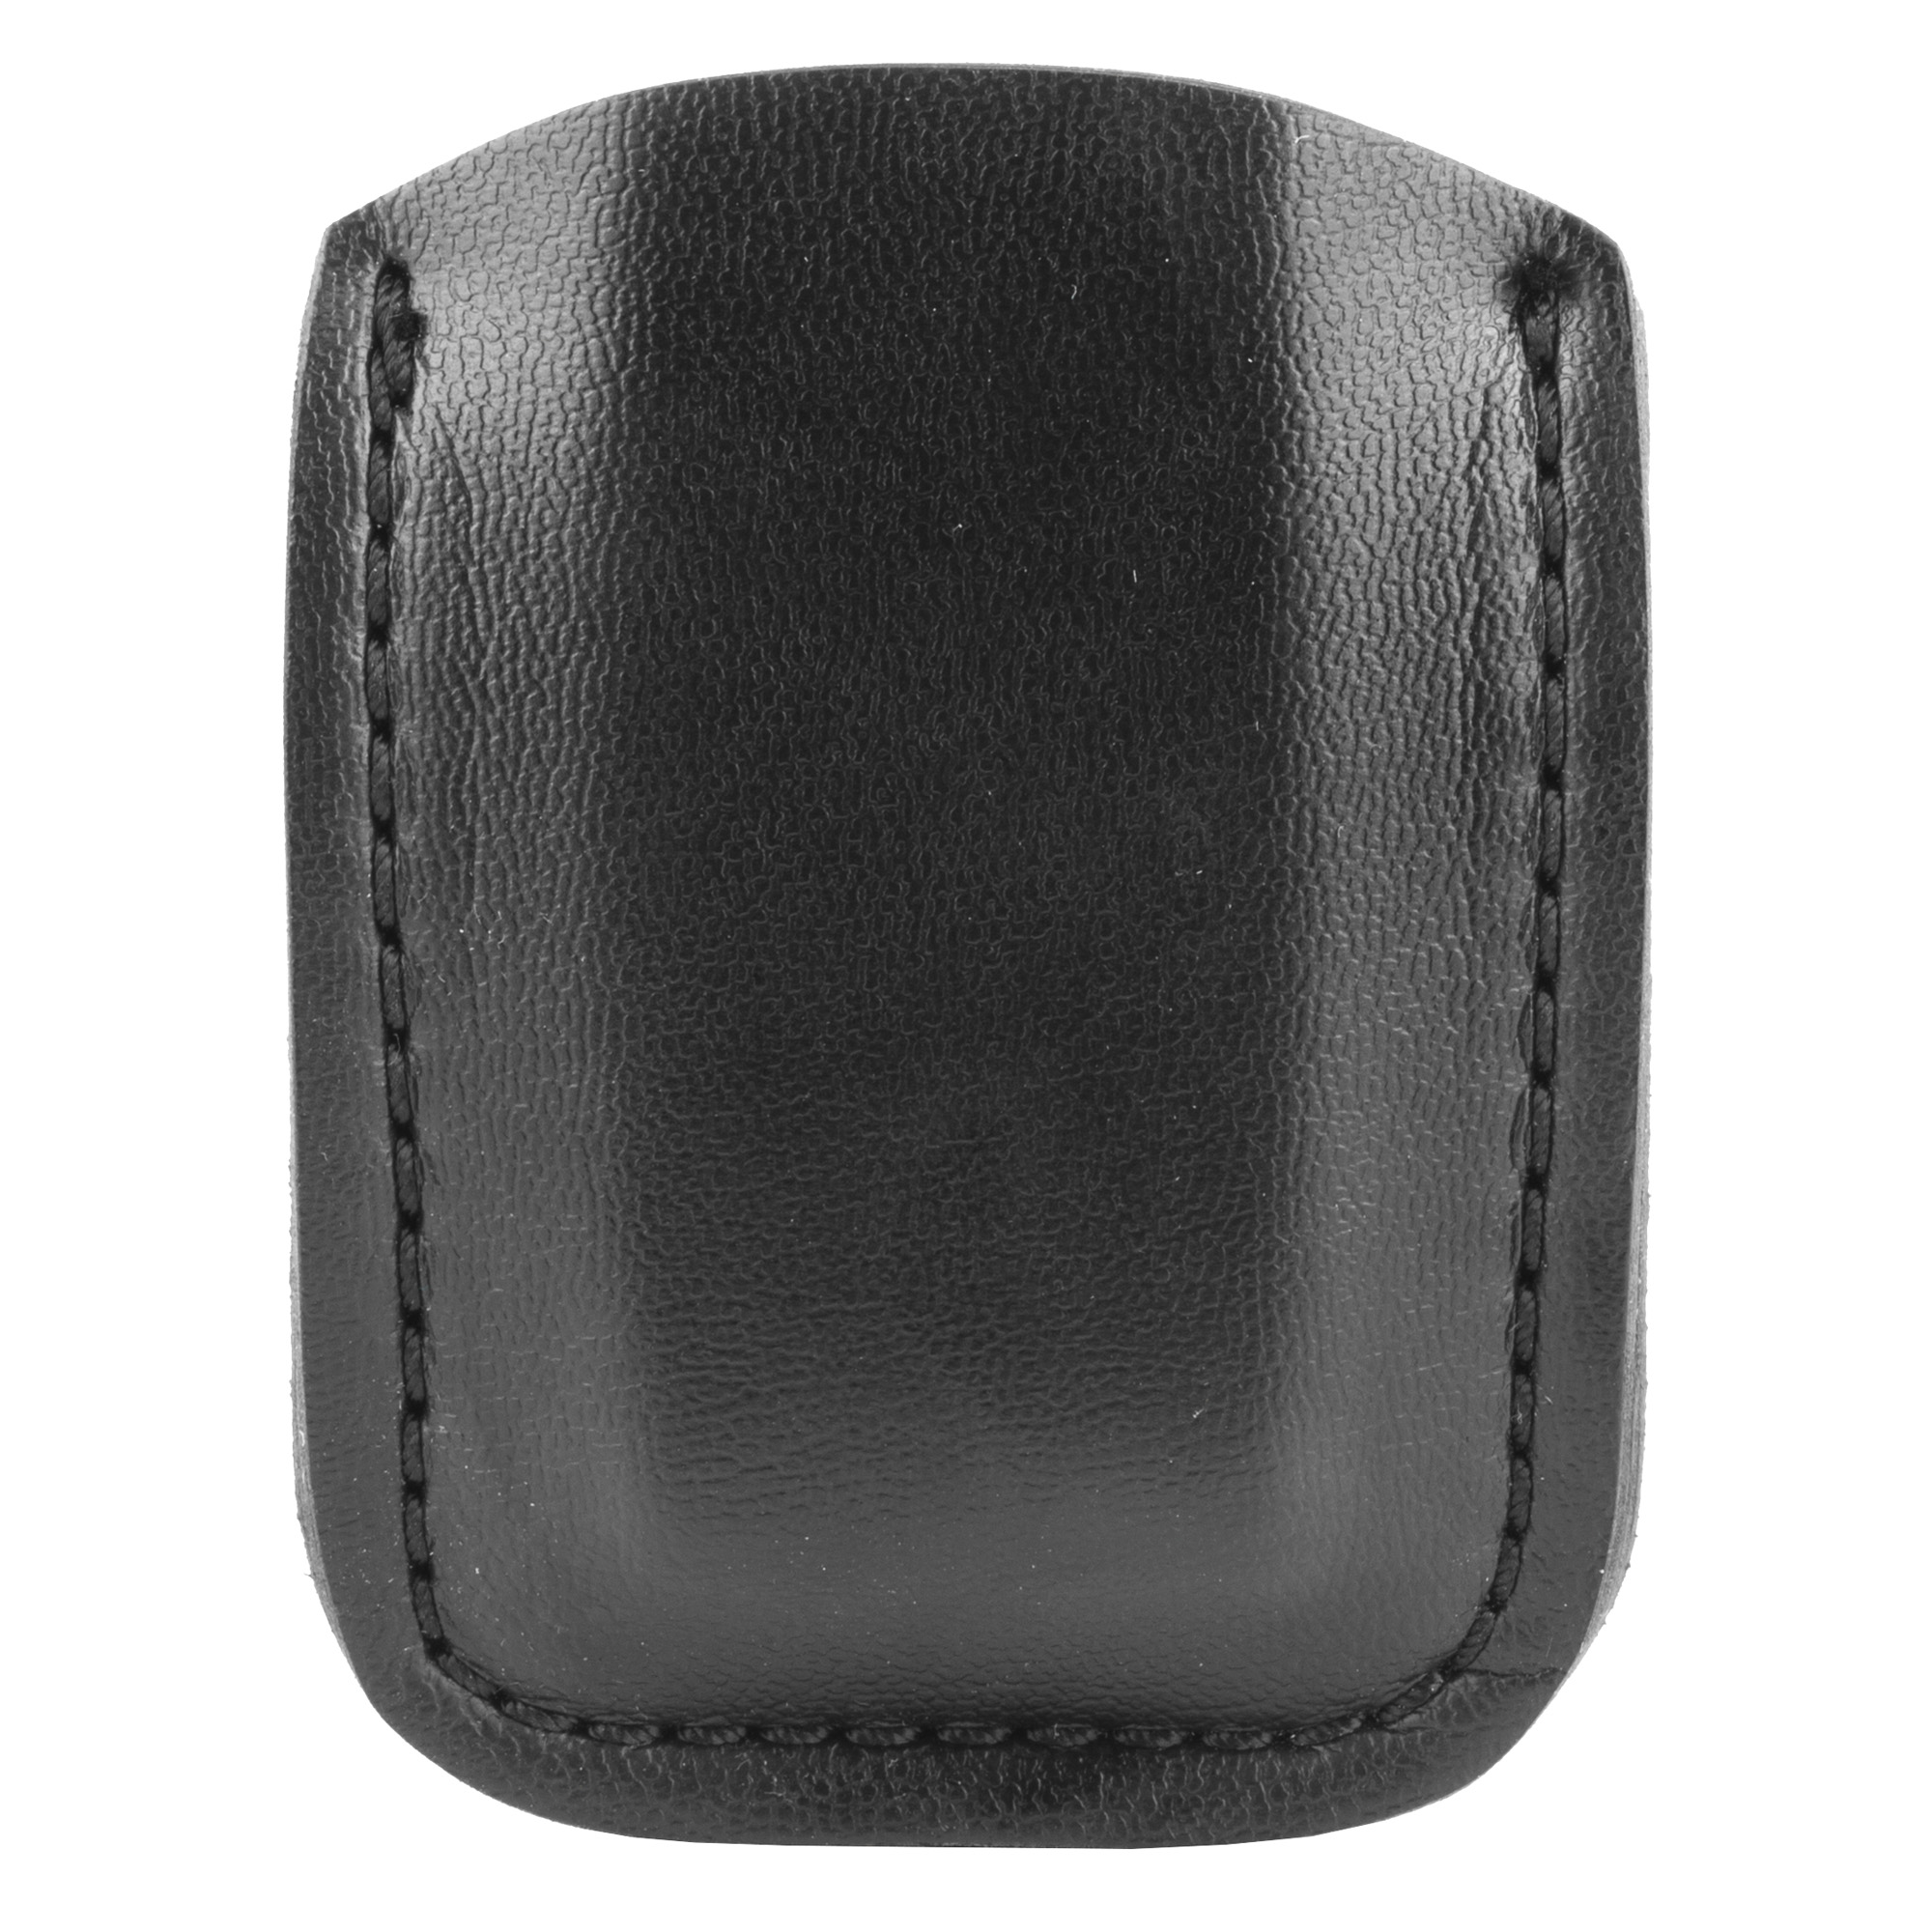 "The Model 81 Open Top Lightweight Magazine Pouch features a low cut design and is a two-piece leather and laminate construction. The back side of the 81 folds over to form a snap-type belt loop"" and it also has a small finger tab next to the snap for quick and easy removal. The 81 is for use on belts up to 1.75 in. (45 mm) wide."